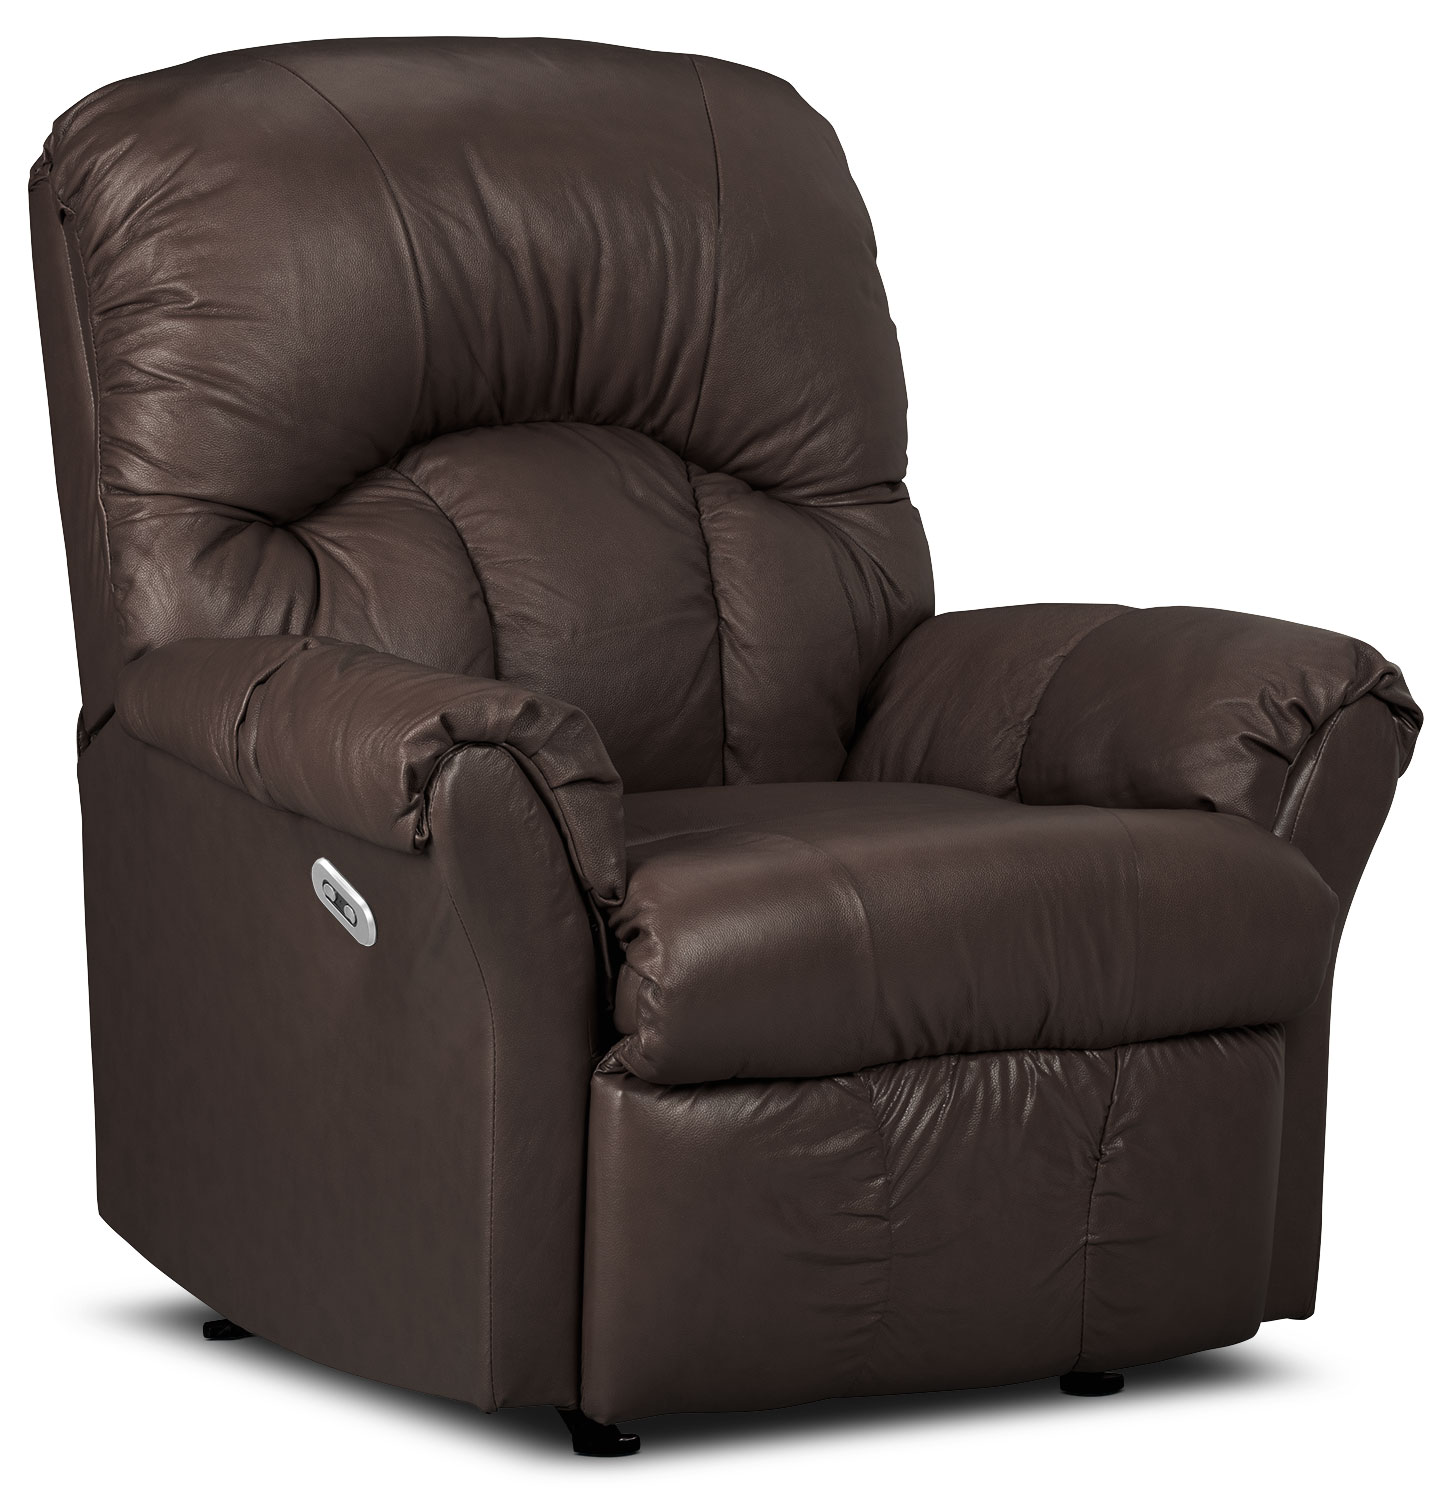 Living Room Furniture - Designed2B Recliner 6734 Bonded Leather Power Recliner Chair - Walnut